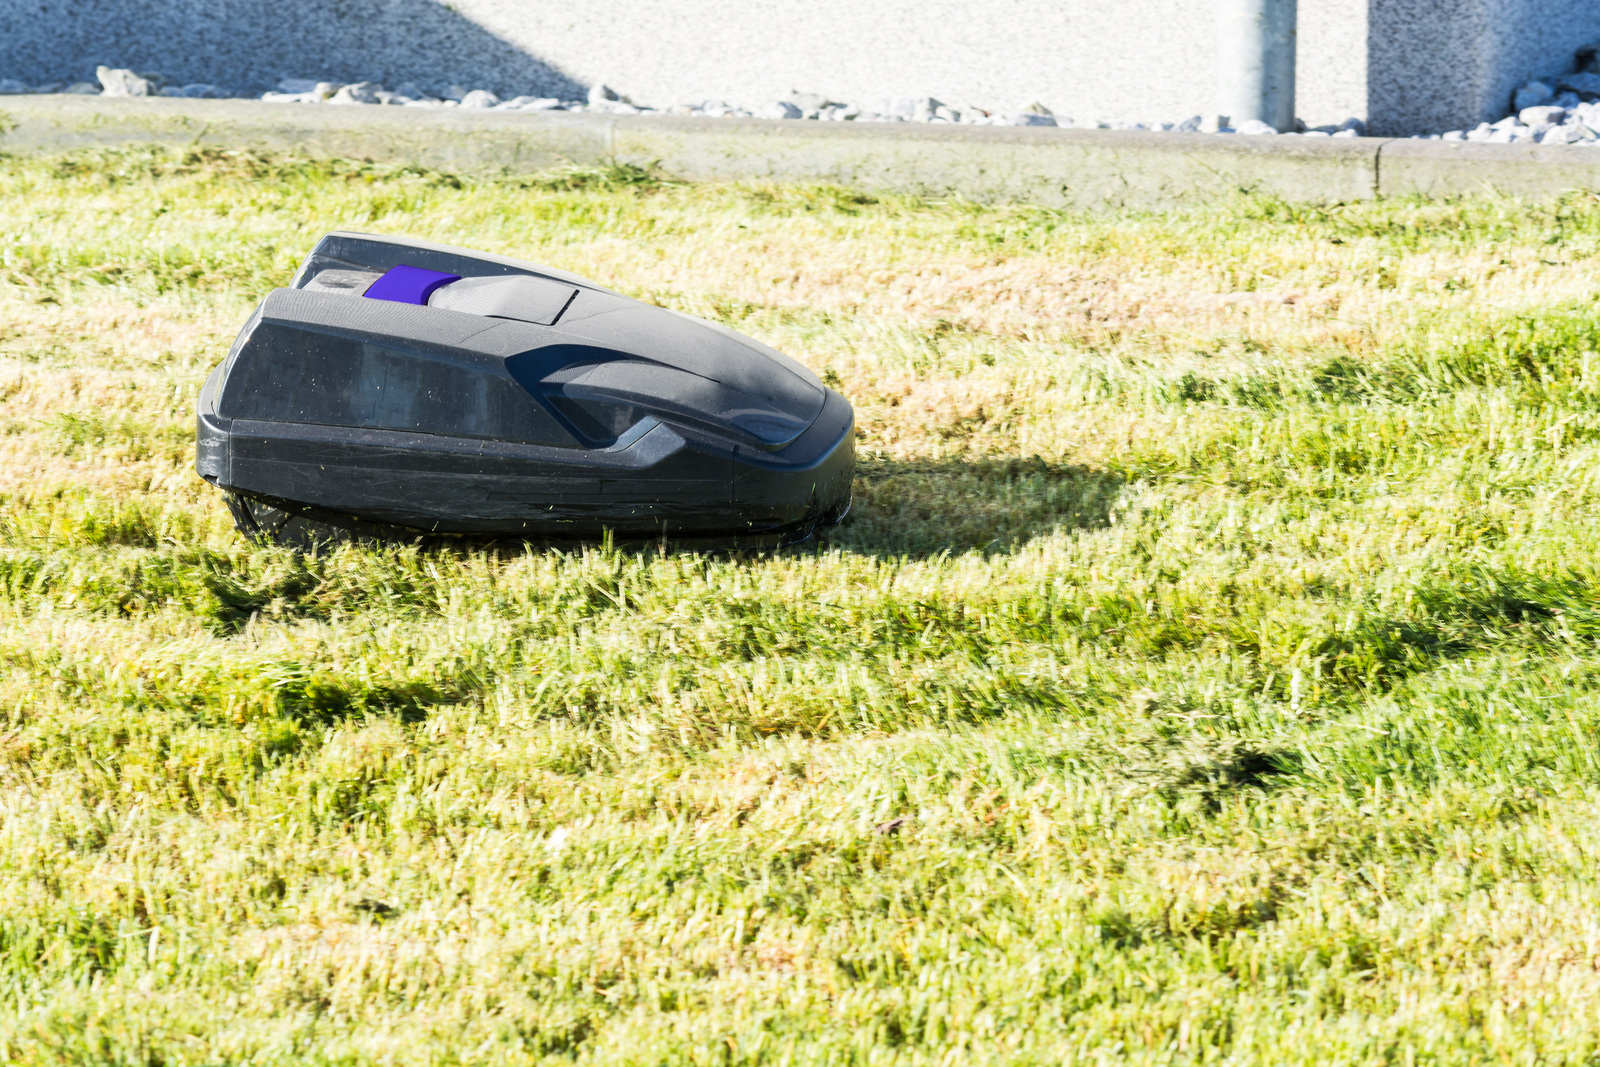 smart lawnmower for your patch of grass in your scottsdale home